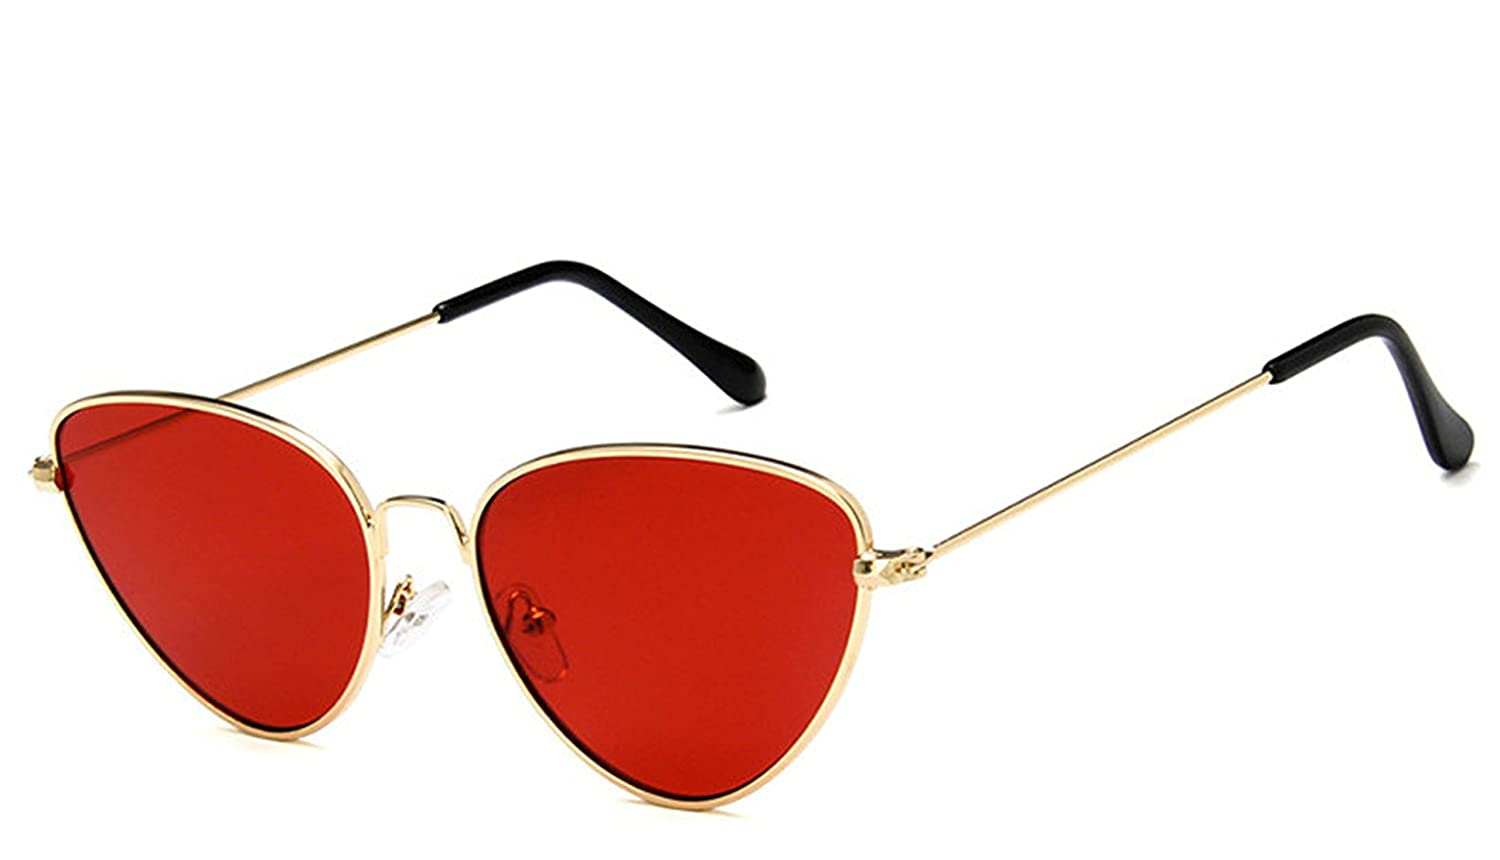 Amazon.com: Trendy Tinted Color Vintage Shaped Sun Glasses ...